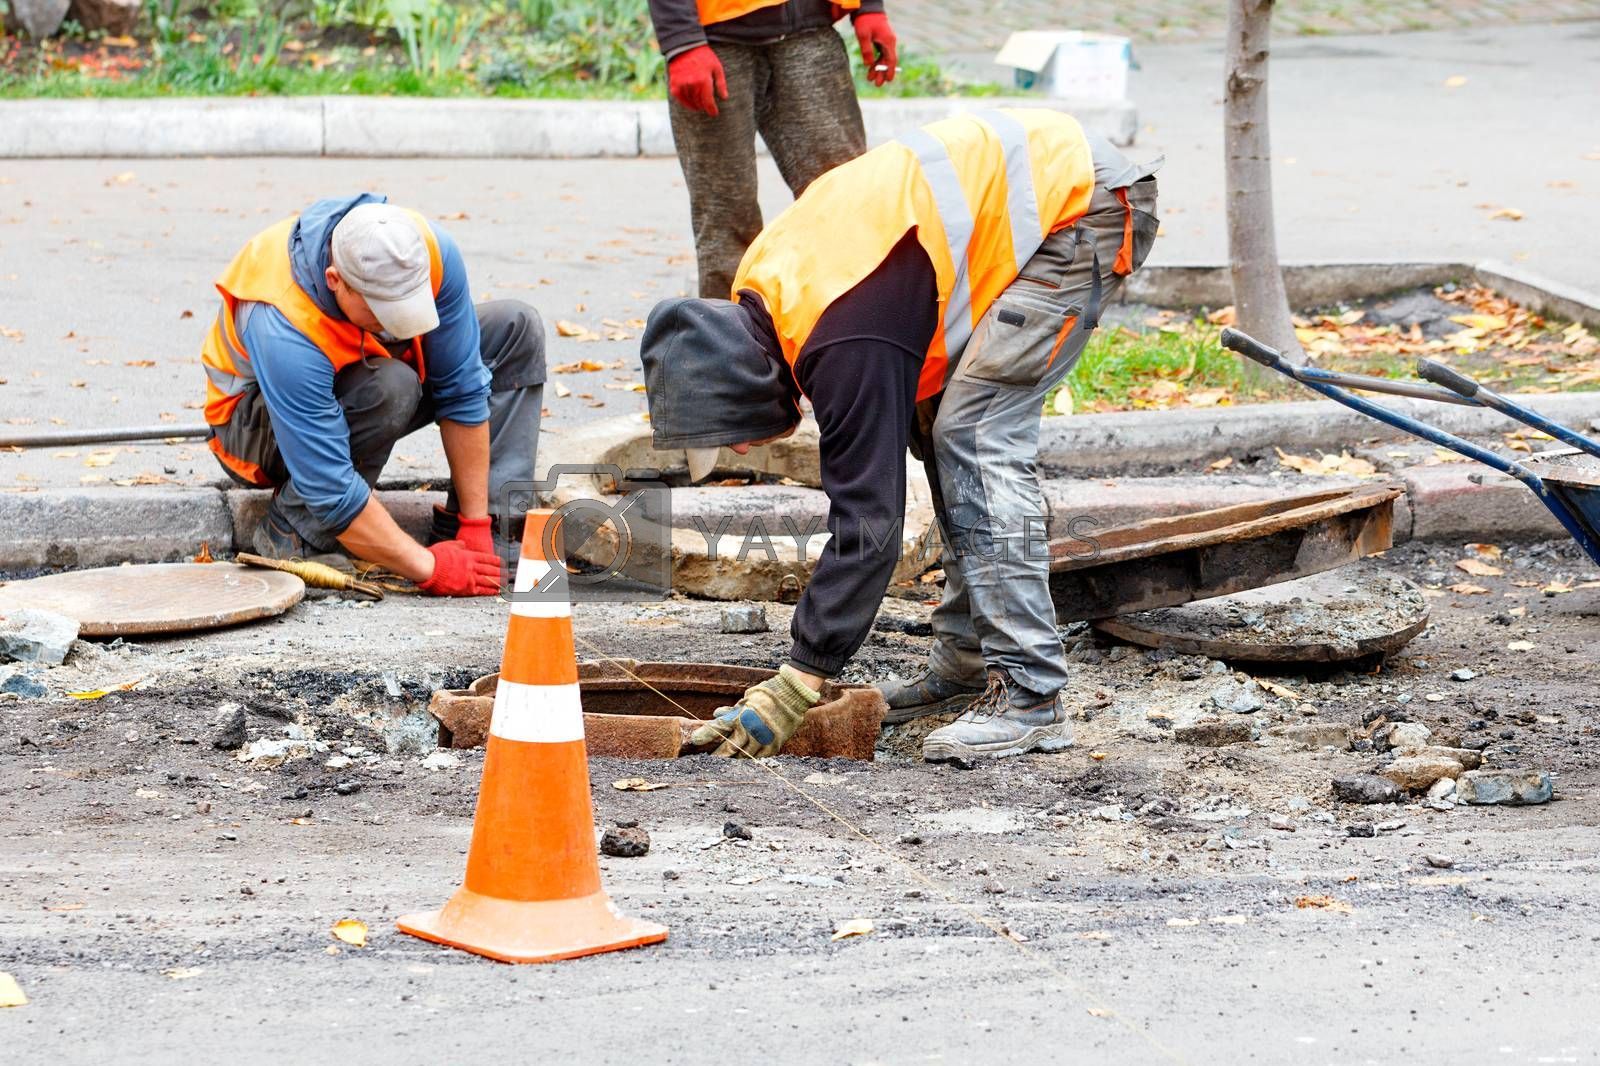 Road workers on a fenced-in stretch of road, dressed in reflective clothing, replace an old sewerage manhole.